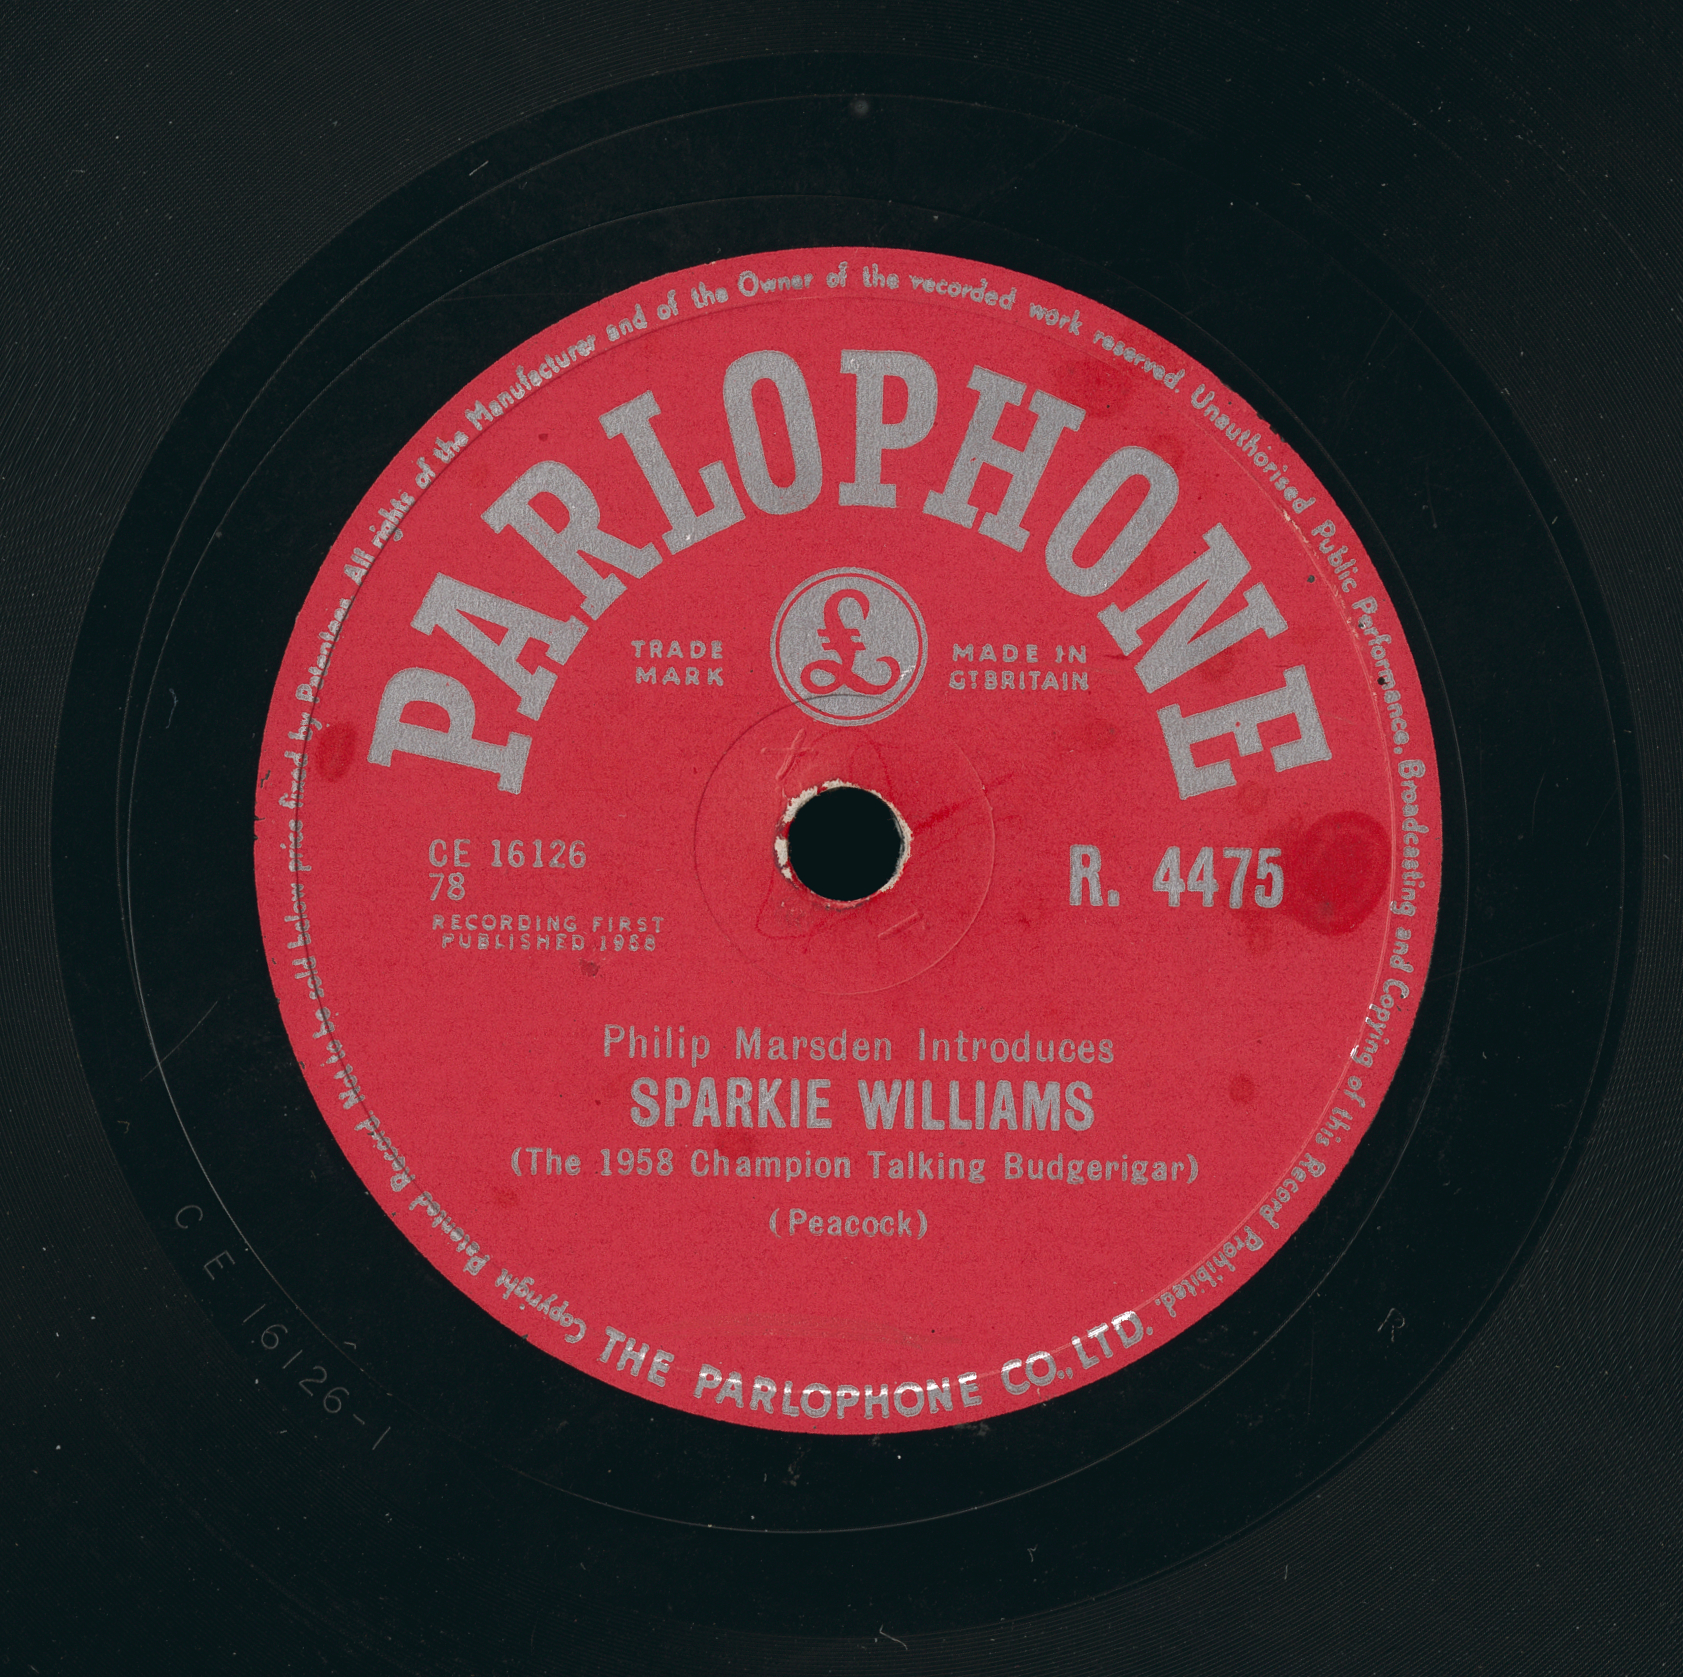 Sparkie Williams